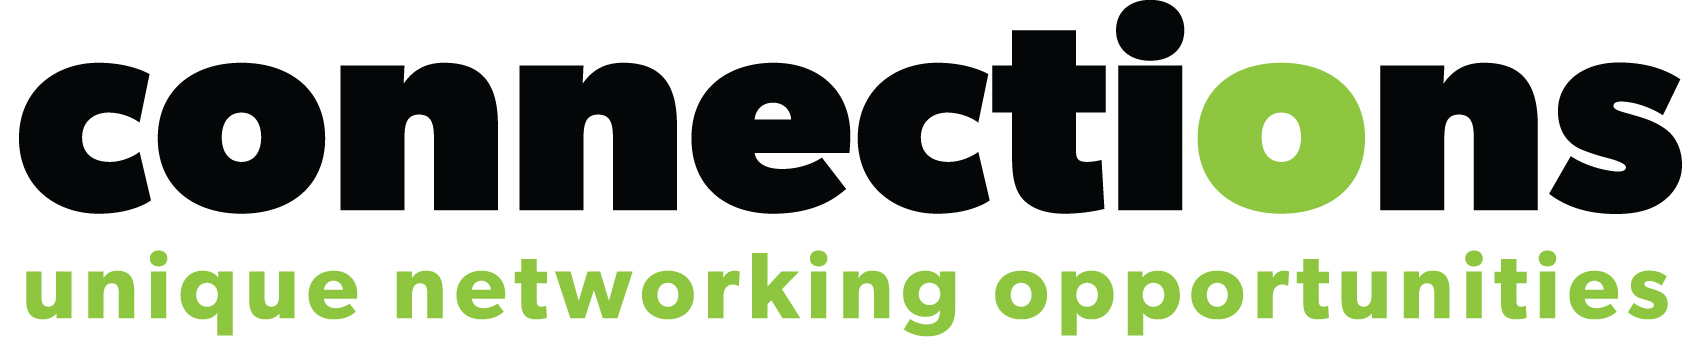 HCC_Connections_logo_all